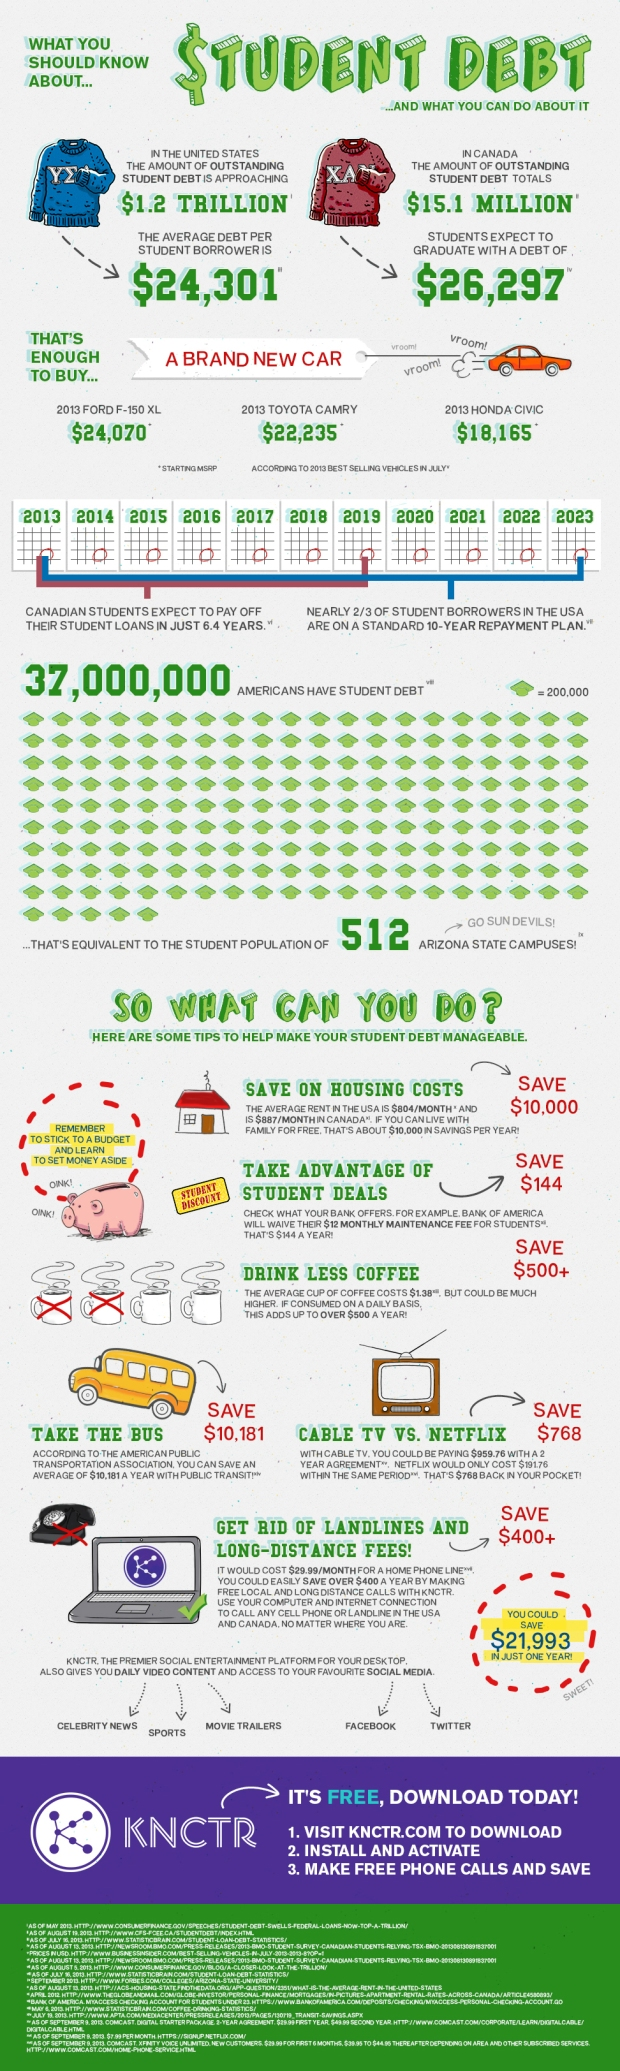 what you should know about student debt and what you can do about it infographic student. Black Bedroom Furniture Sets. Home Design Ideas